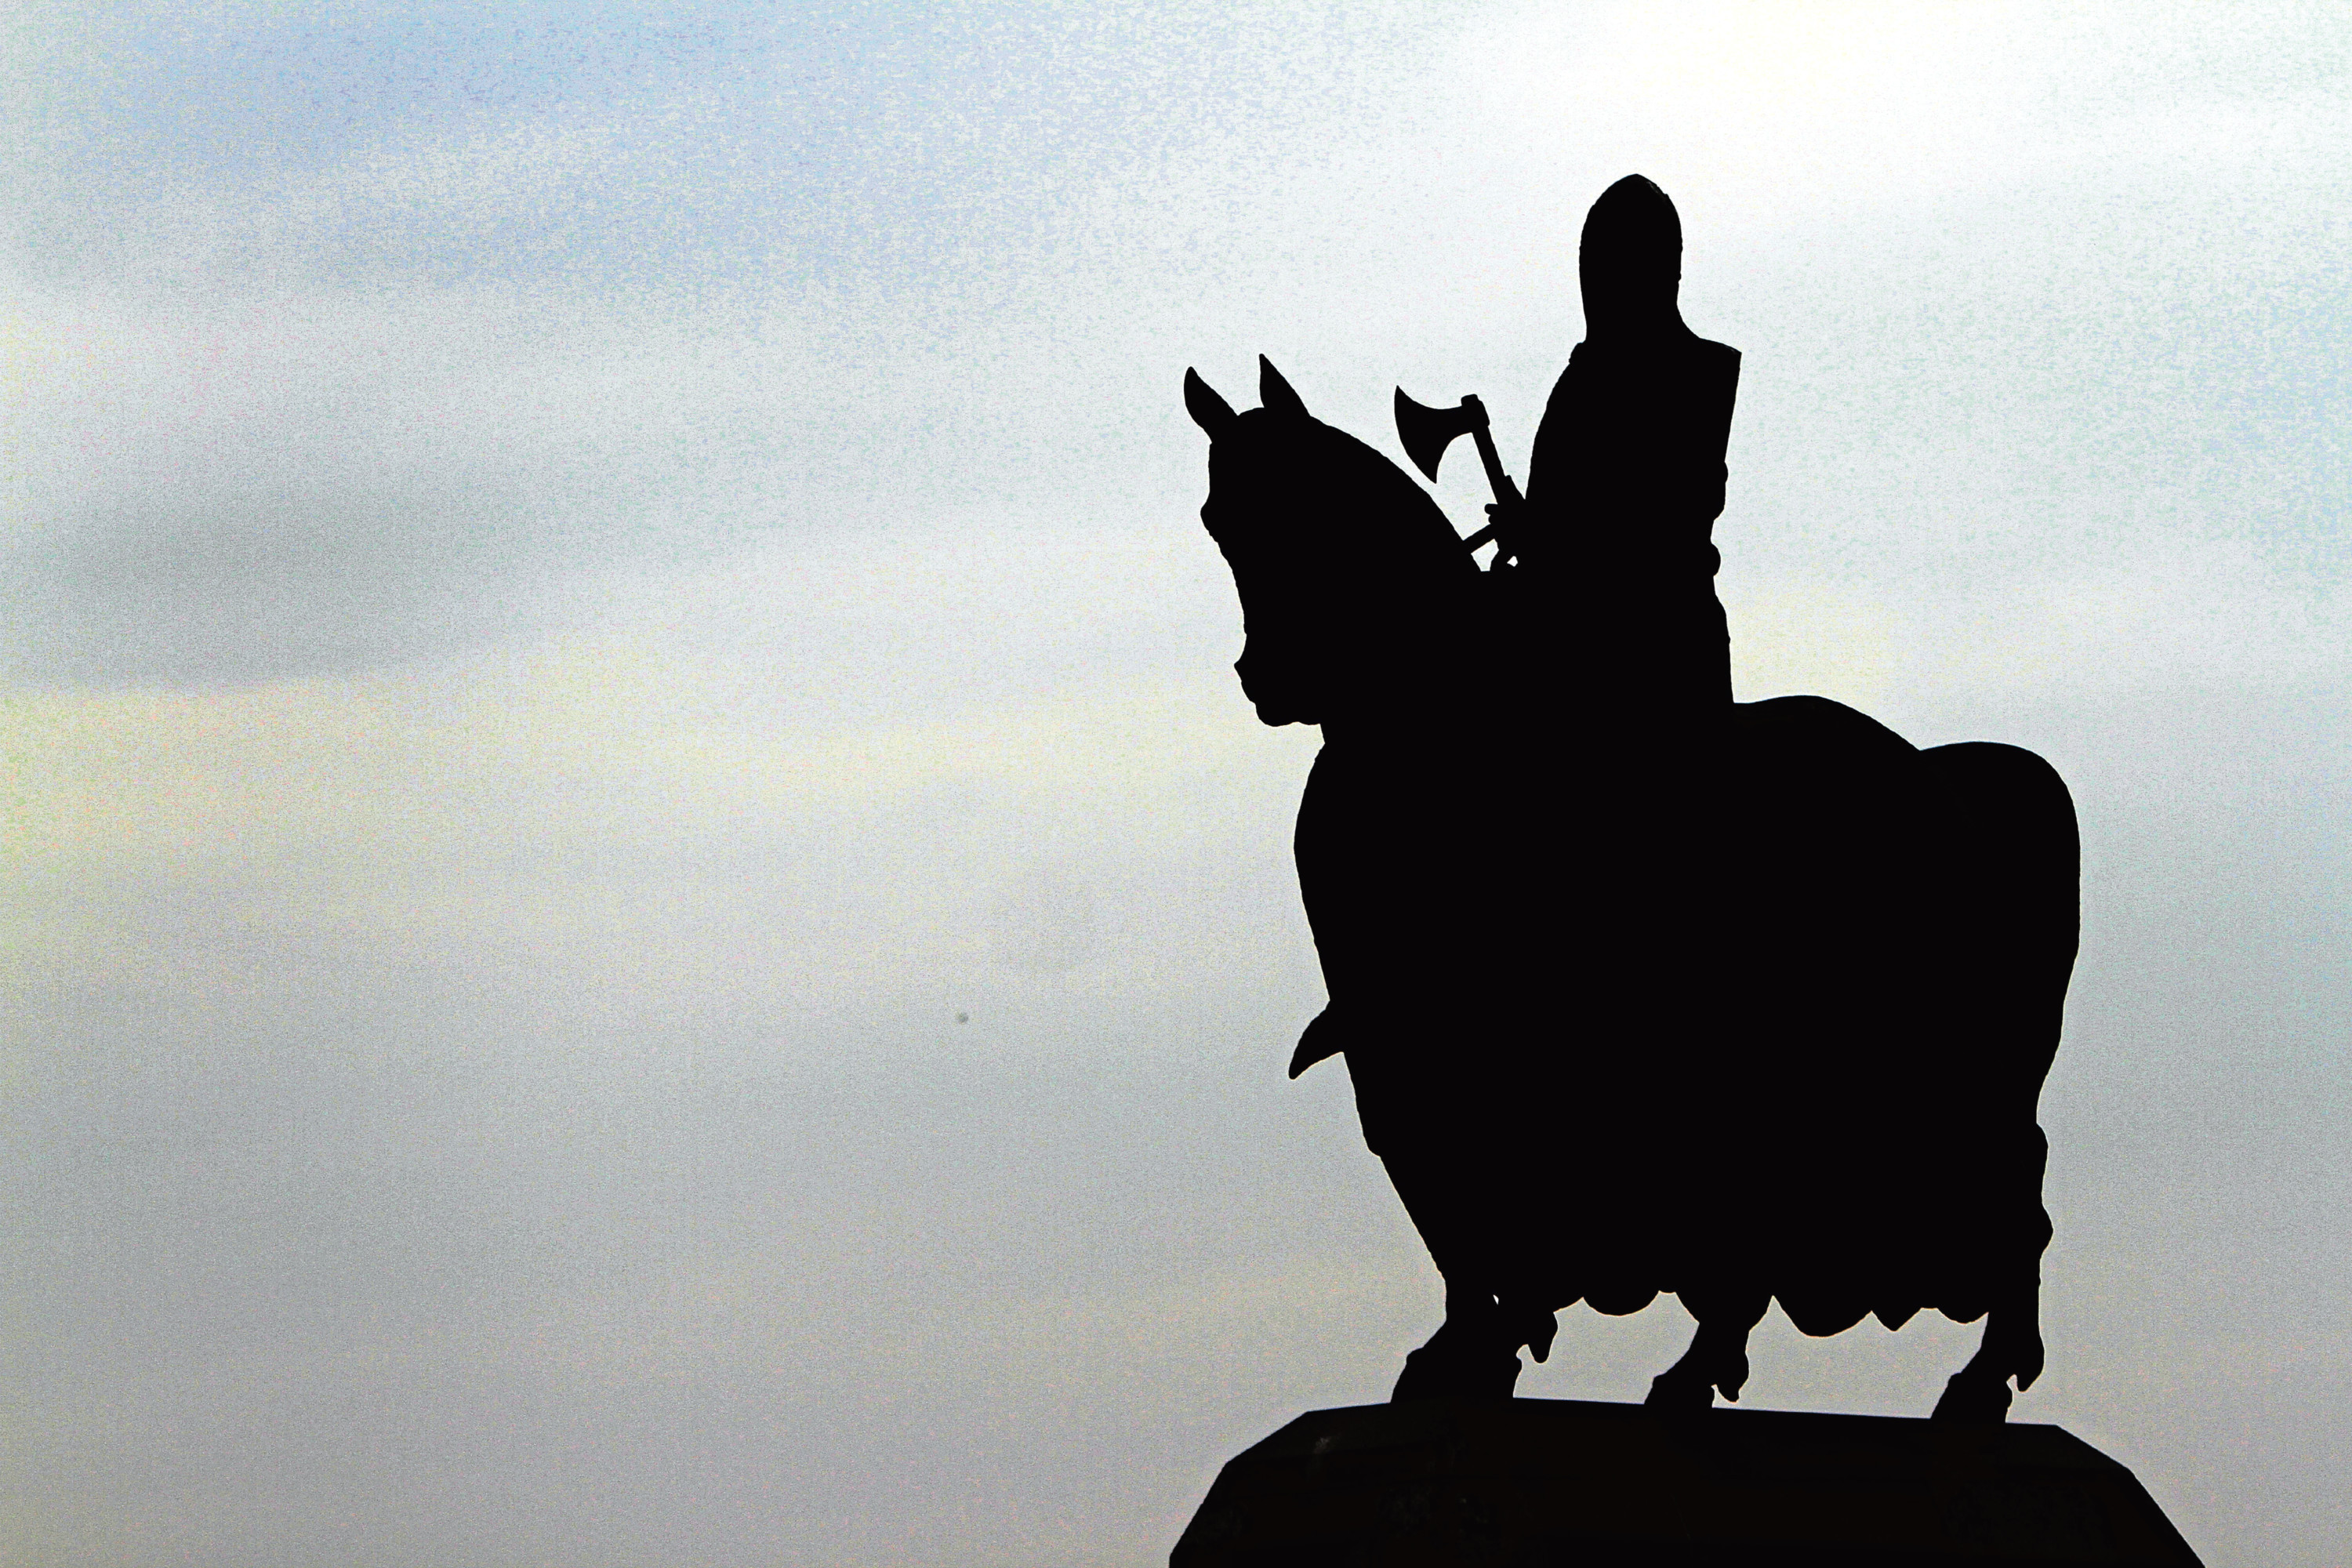 Where Bannockburn is concerned, we must remember the loss of human life, not use it as a symbol of present-day nationalism, argues one correspondent.